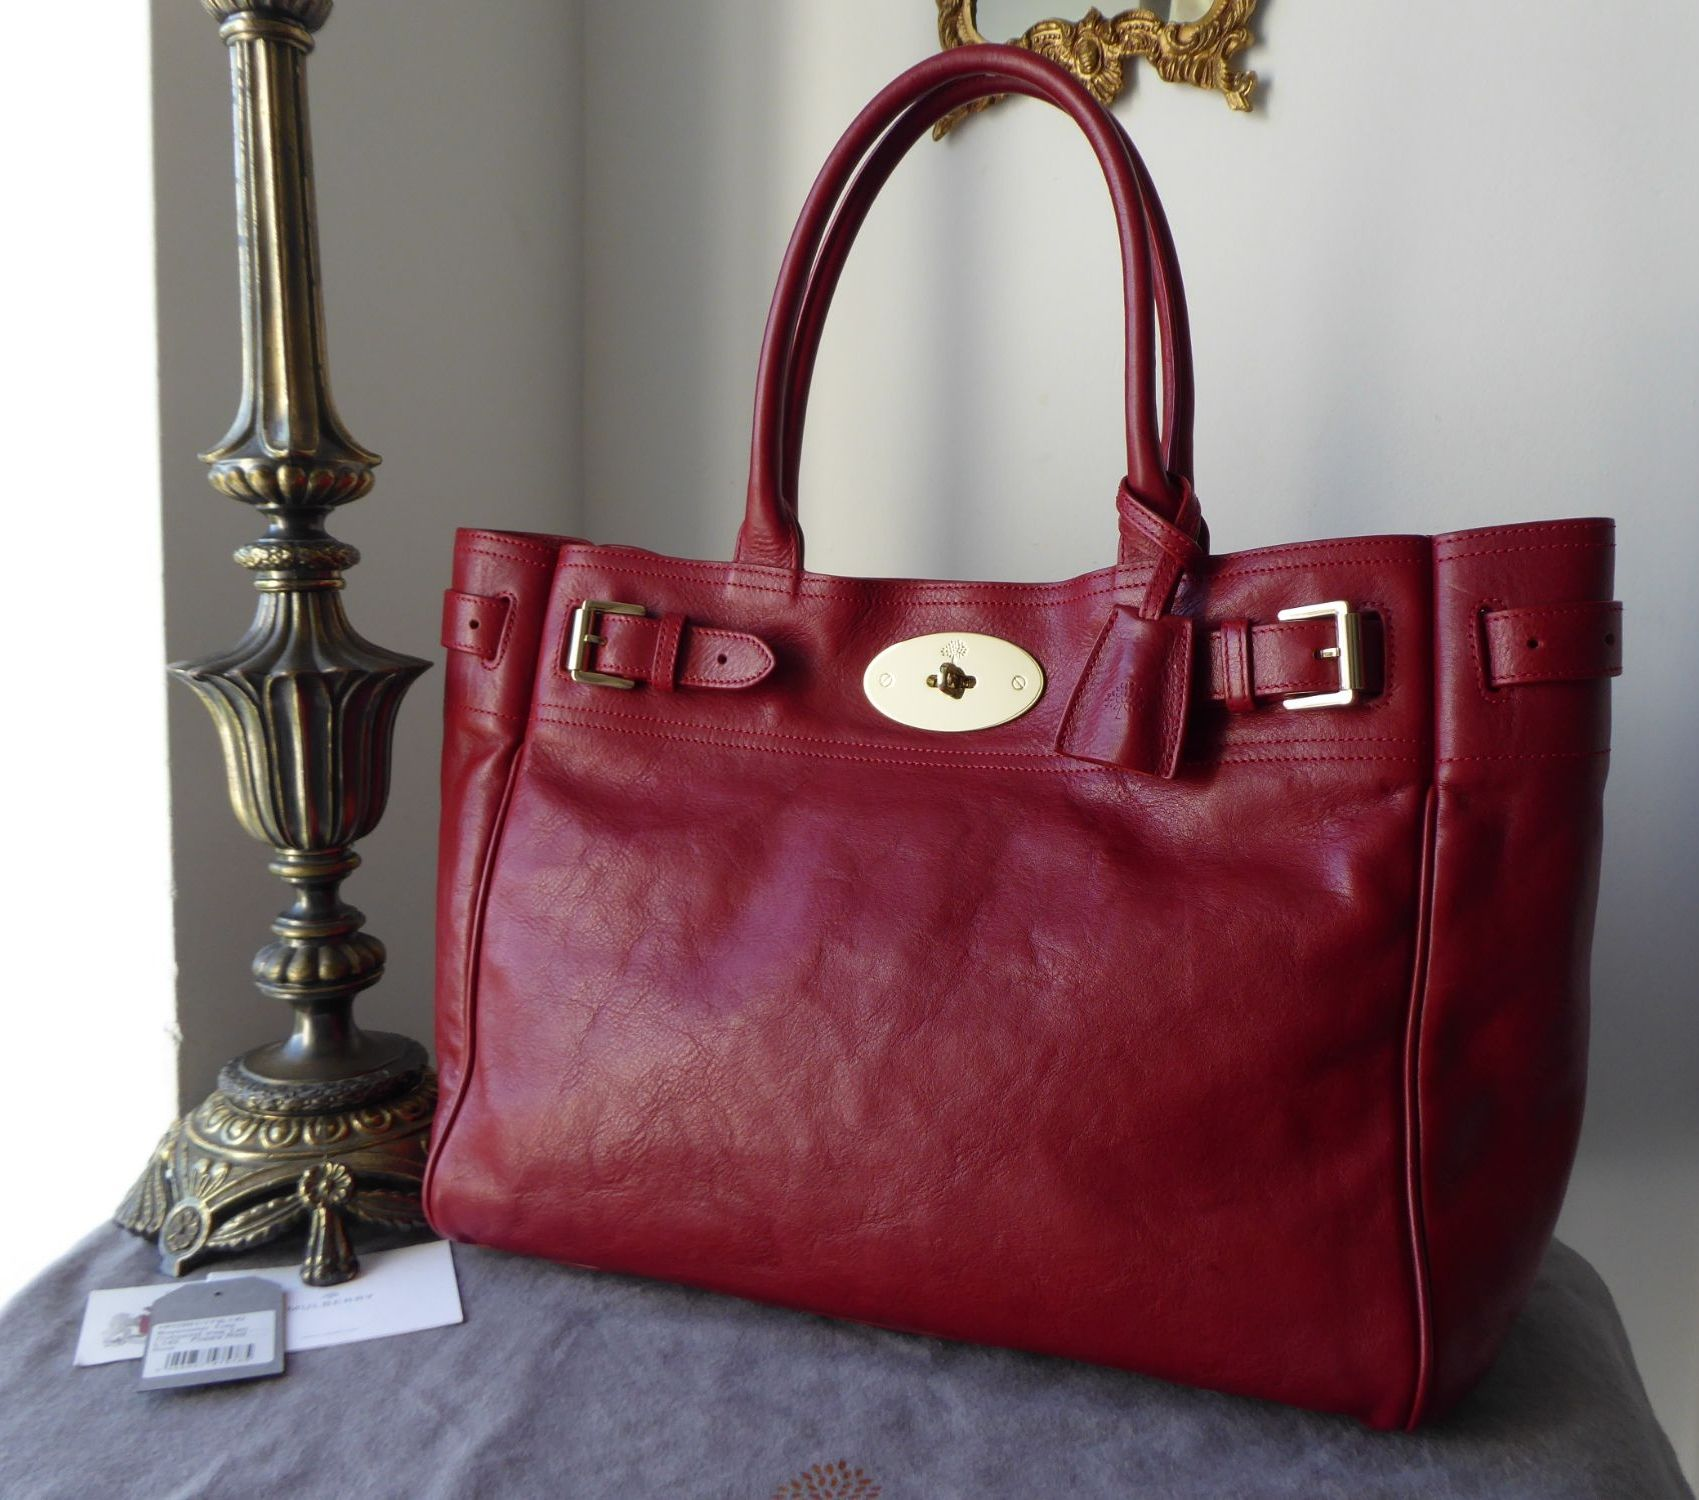 Mulberry Classic Bayswater Tote in Poppy Red Natural